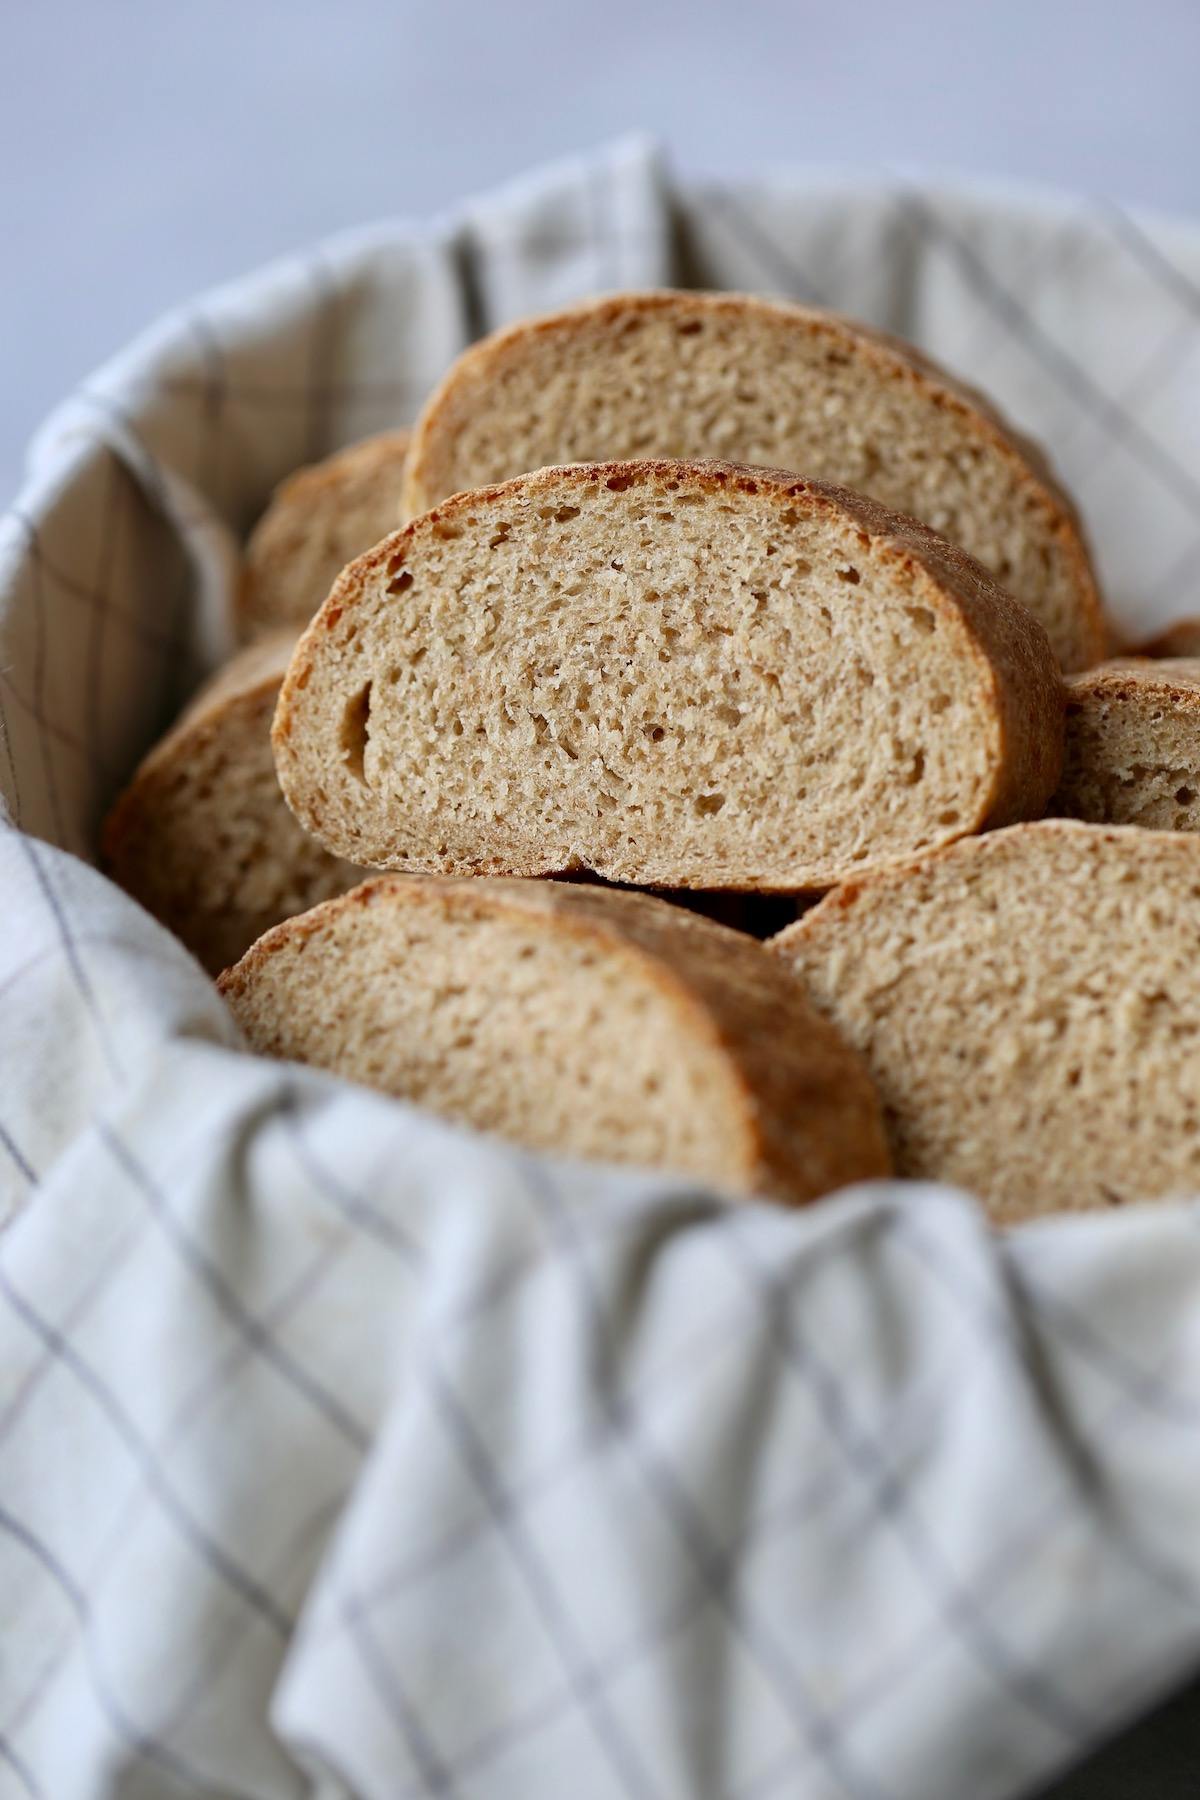 Slices of homemade Italian bread piled high in a basket